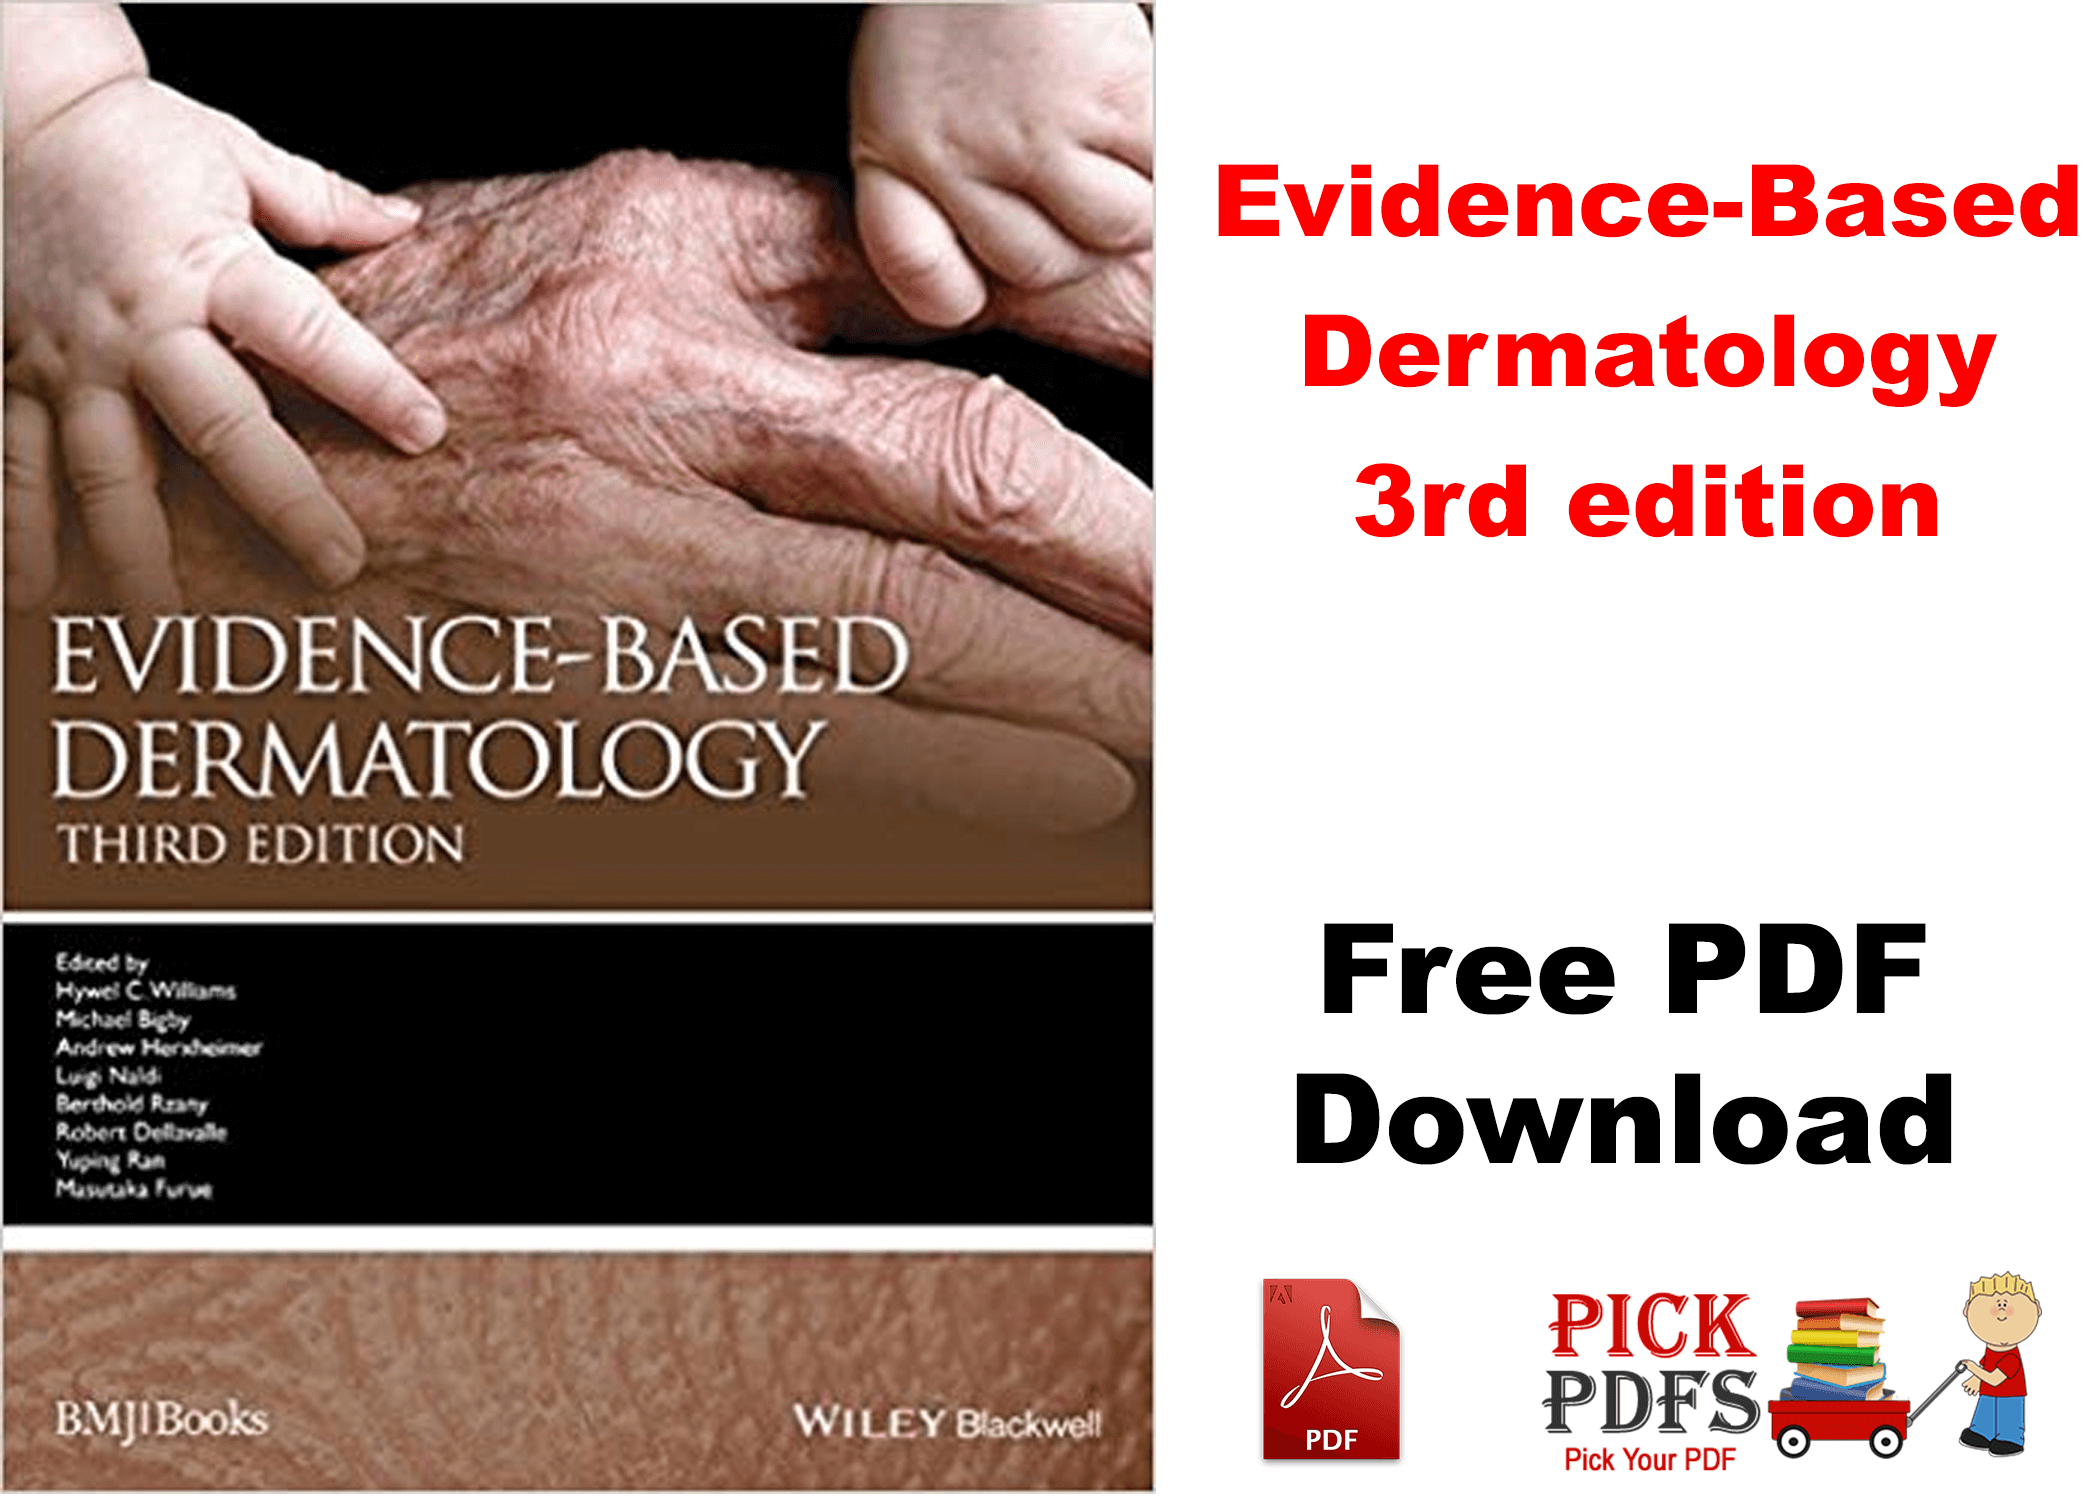 https://pickpdfs.com/evidence-based-dermatology-3rd-edition-free-book-pdf-download/